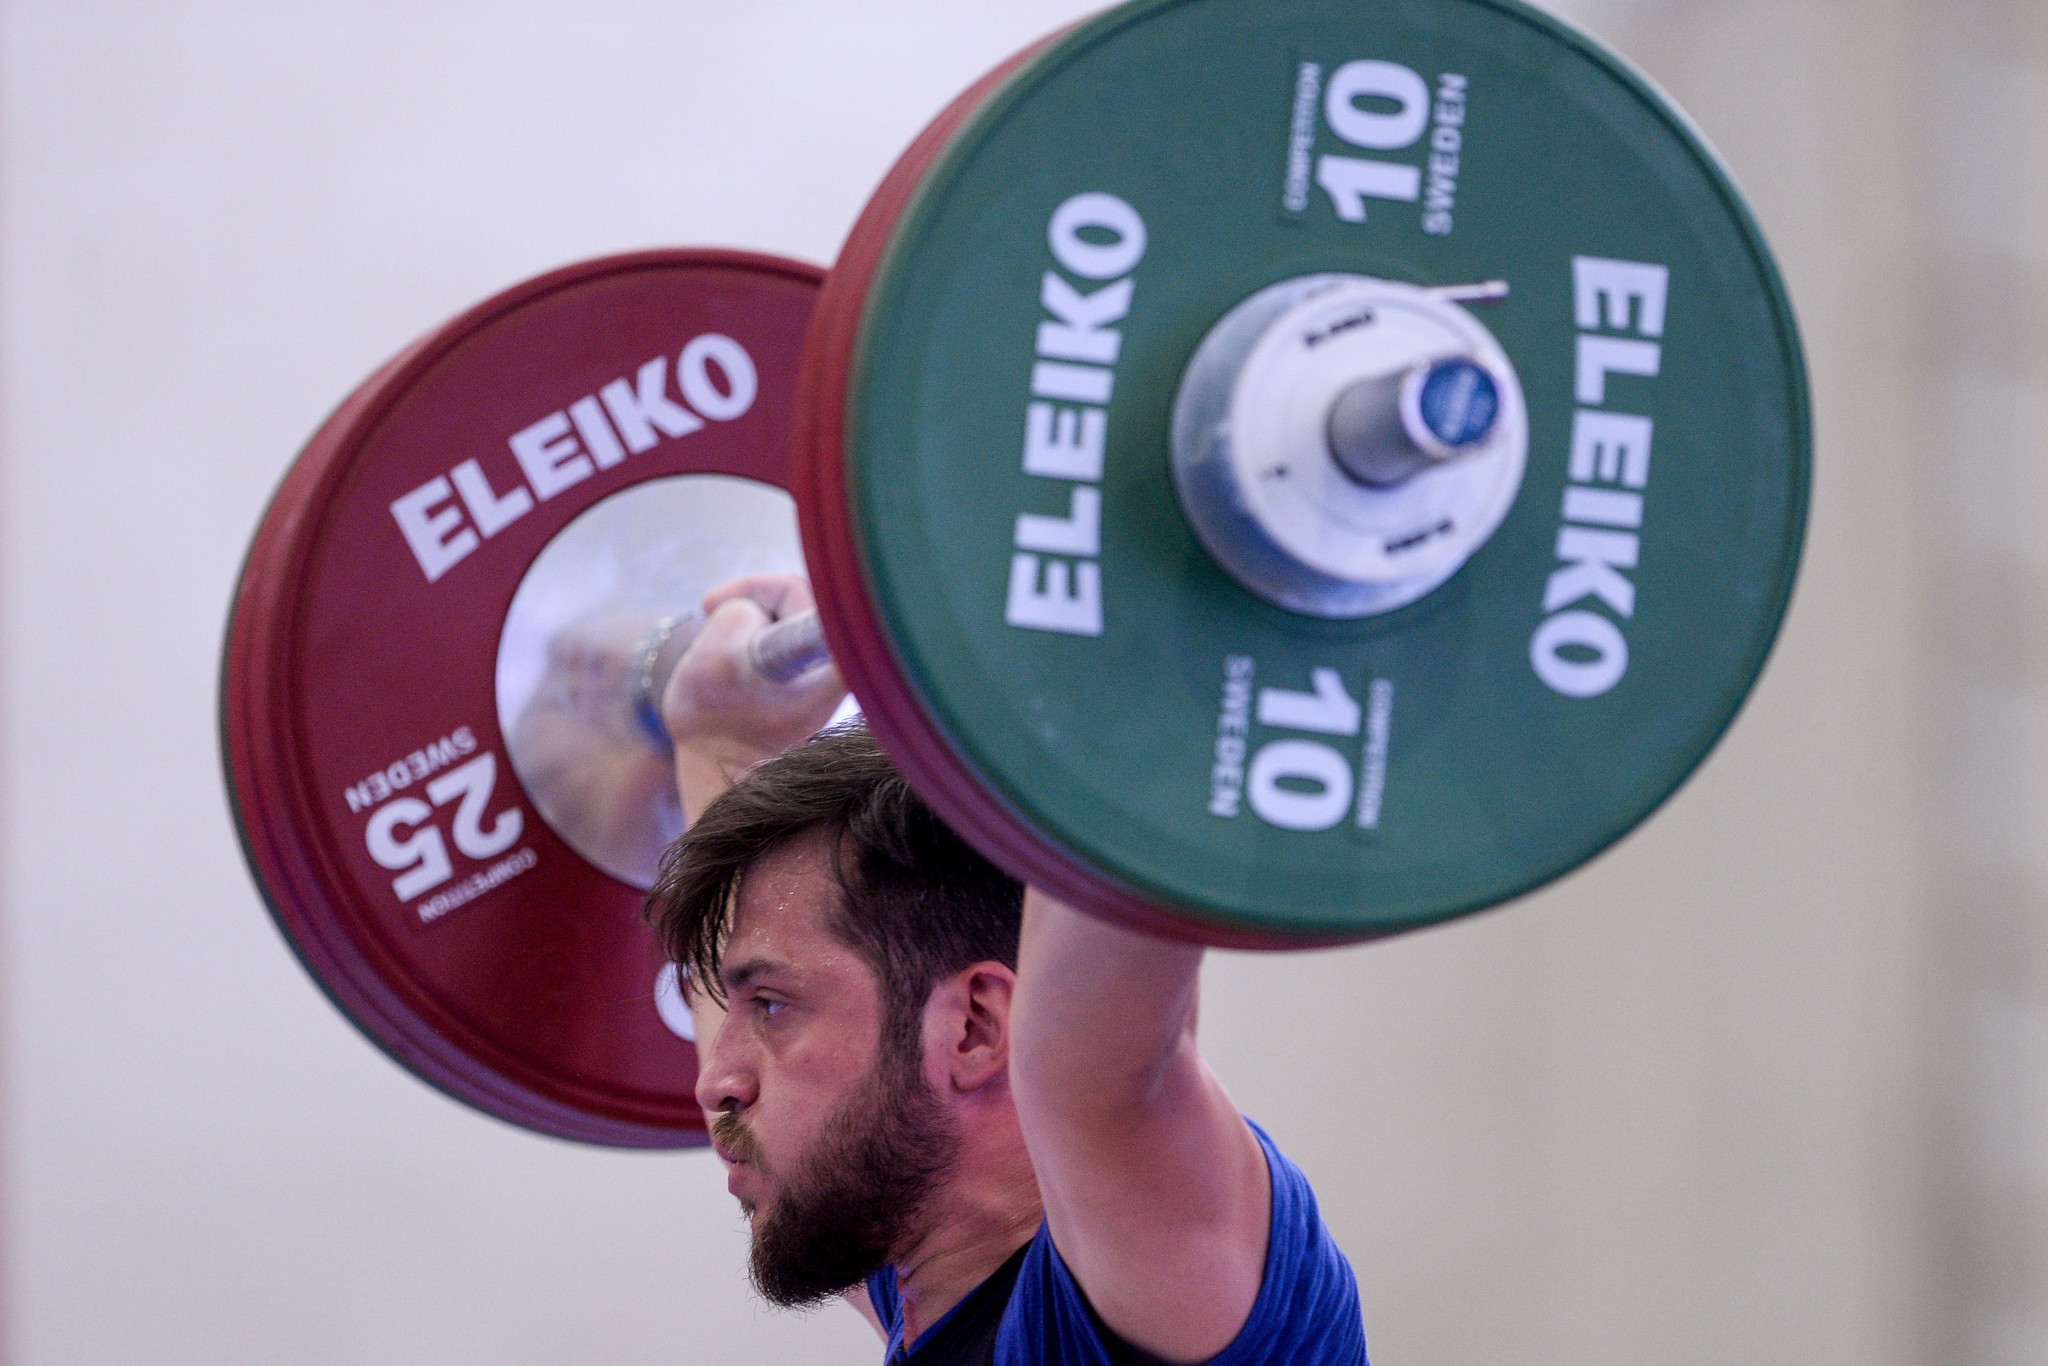 The International Weightlifting Federation Executive Board has today approved the 10 new bodyweight categories for both men and women ©Getty Images